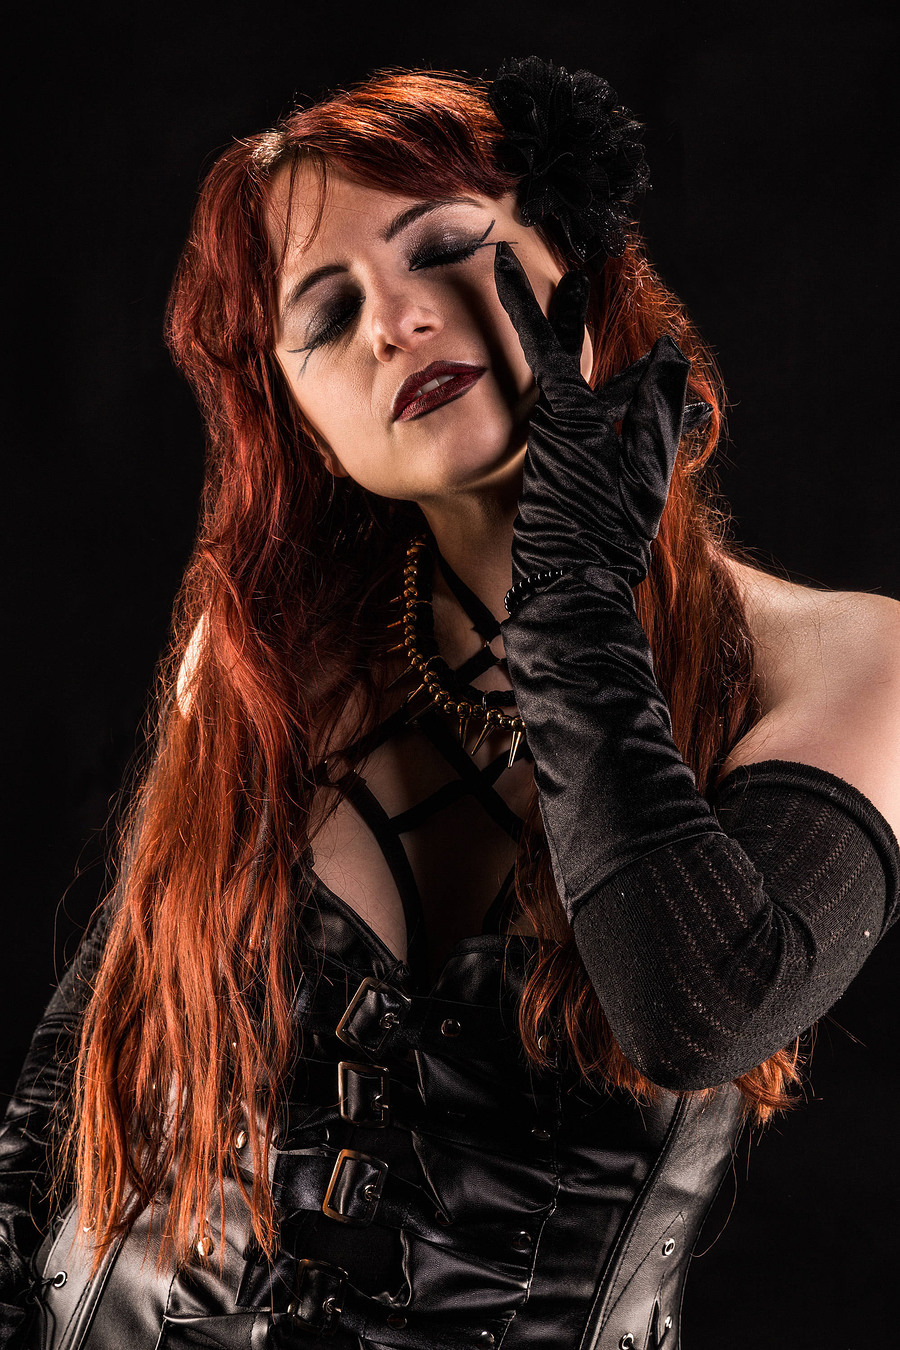 Zara Liore the gothic princess / Photography by Airjohn, Model Zara Liore, Makeup by Zara Liore / Uploaded 22nd June 2018 @ 12:25 PM